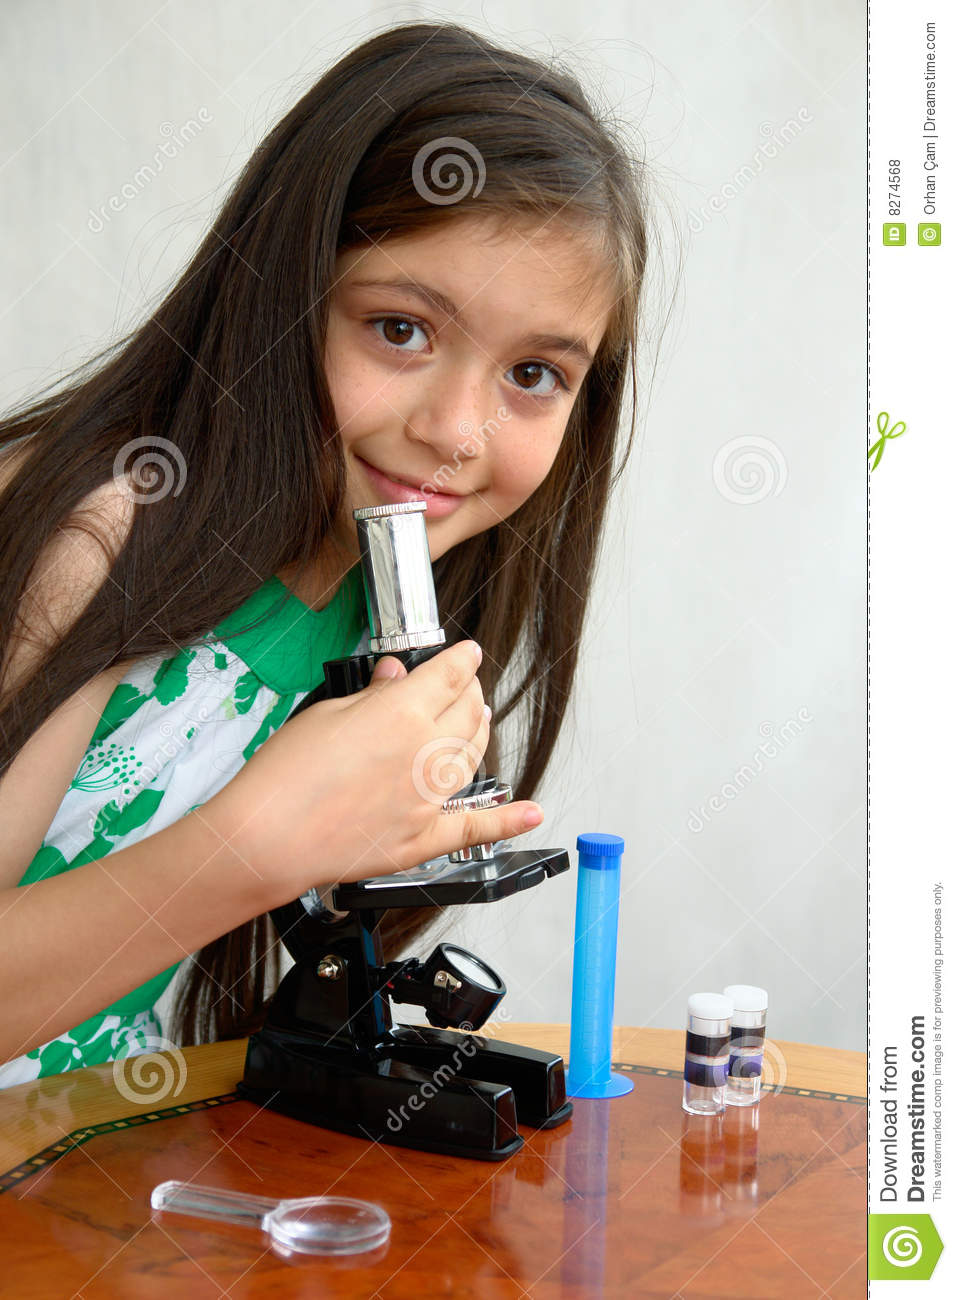 Young researcher analyzes with a microscope